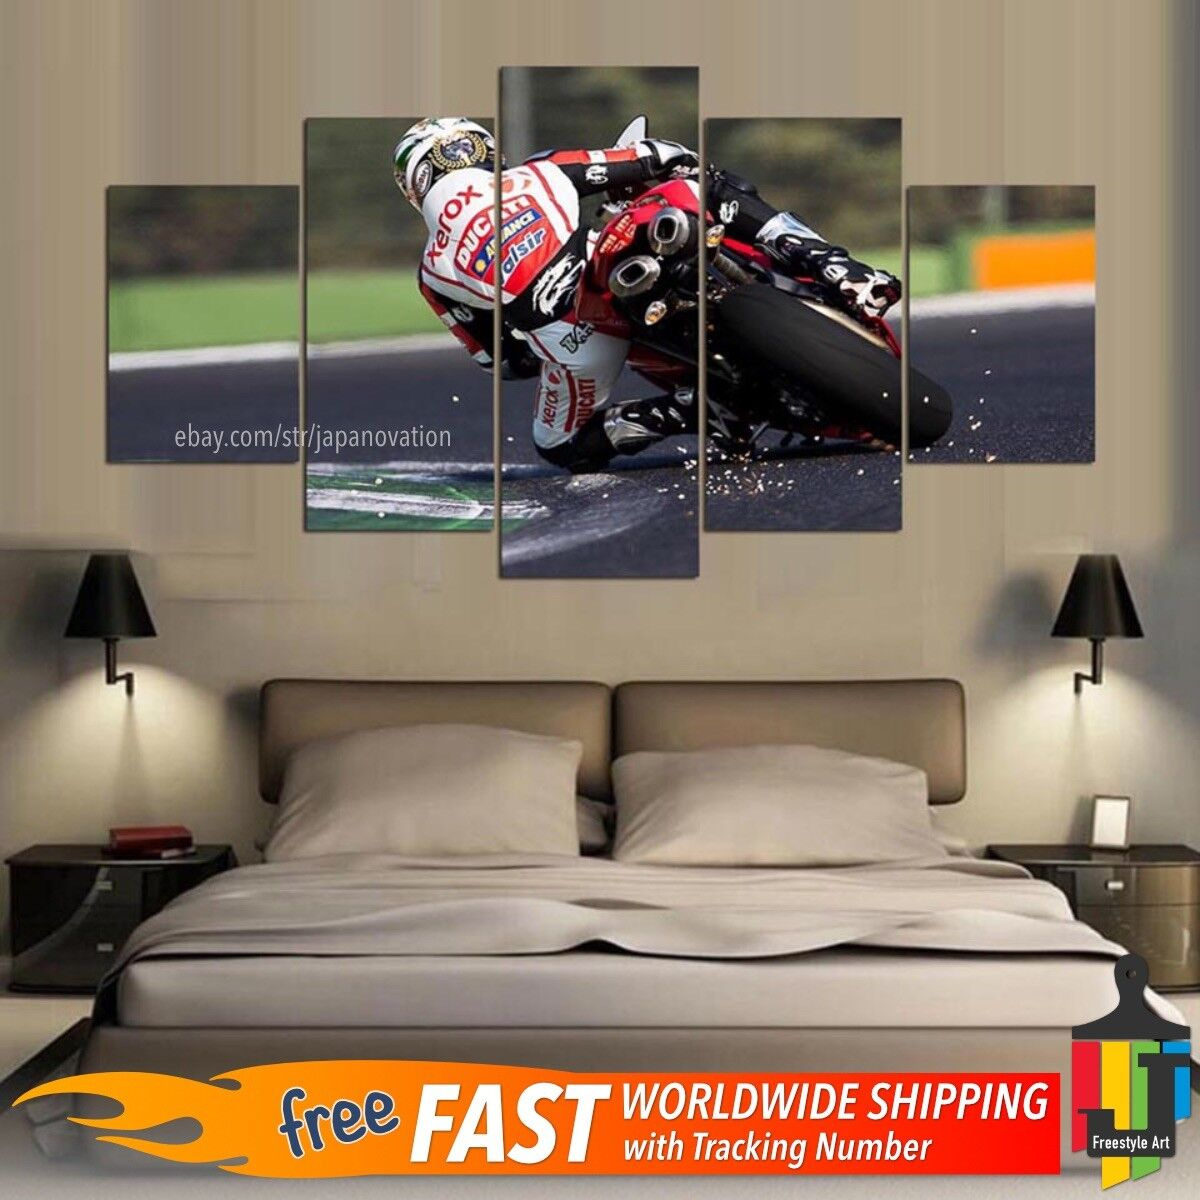 5 Pieces Home Decor Canvas Print Speed Sports Wall Art Racing Motorcycle Biker